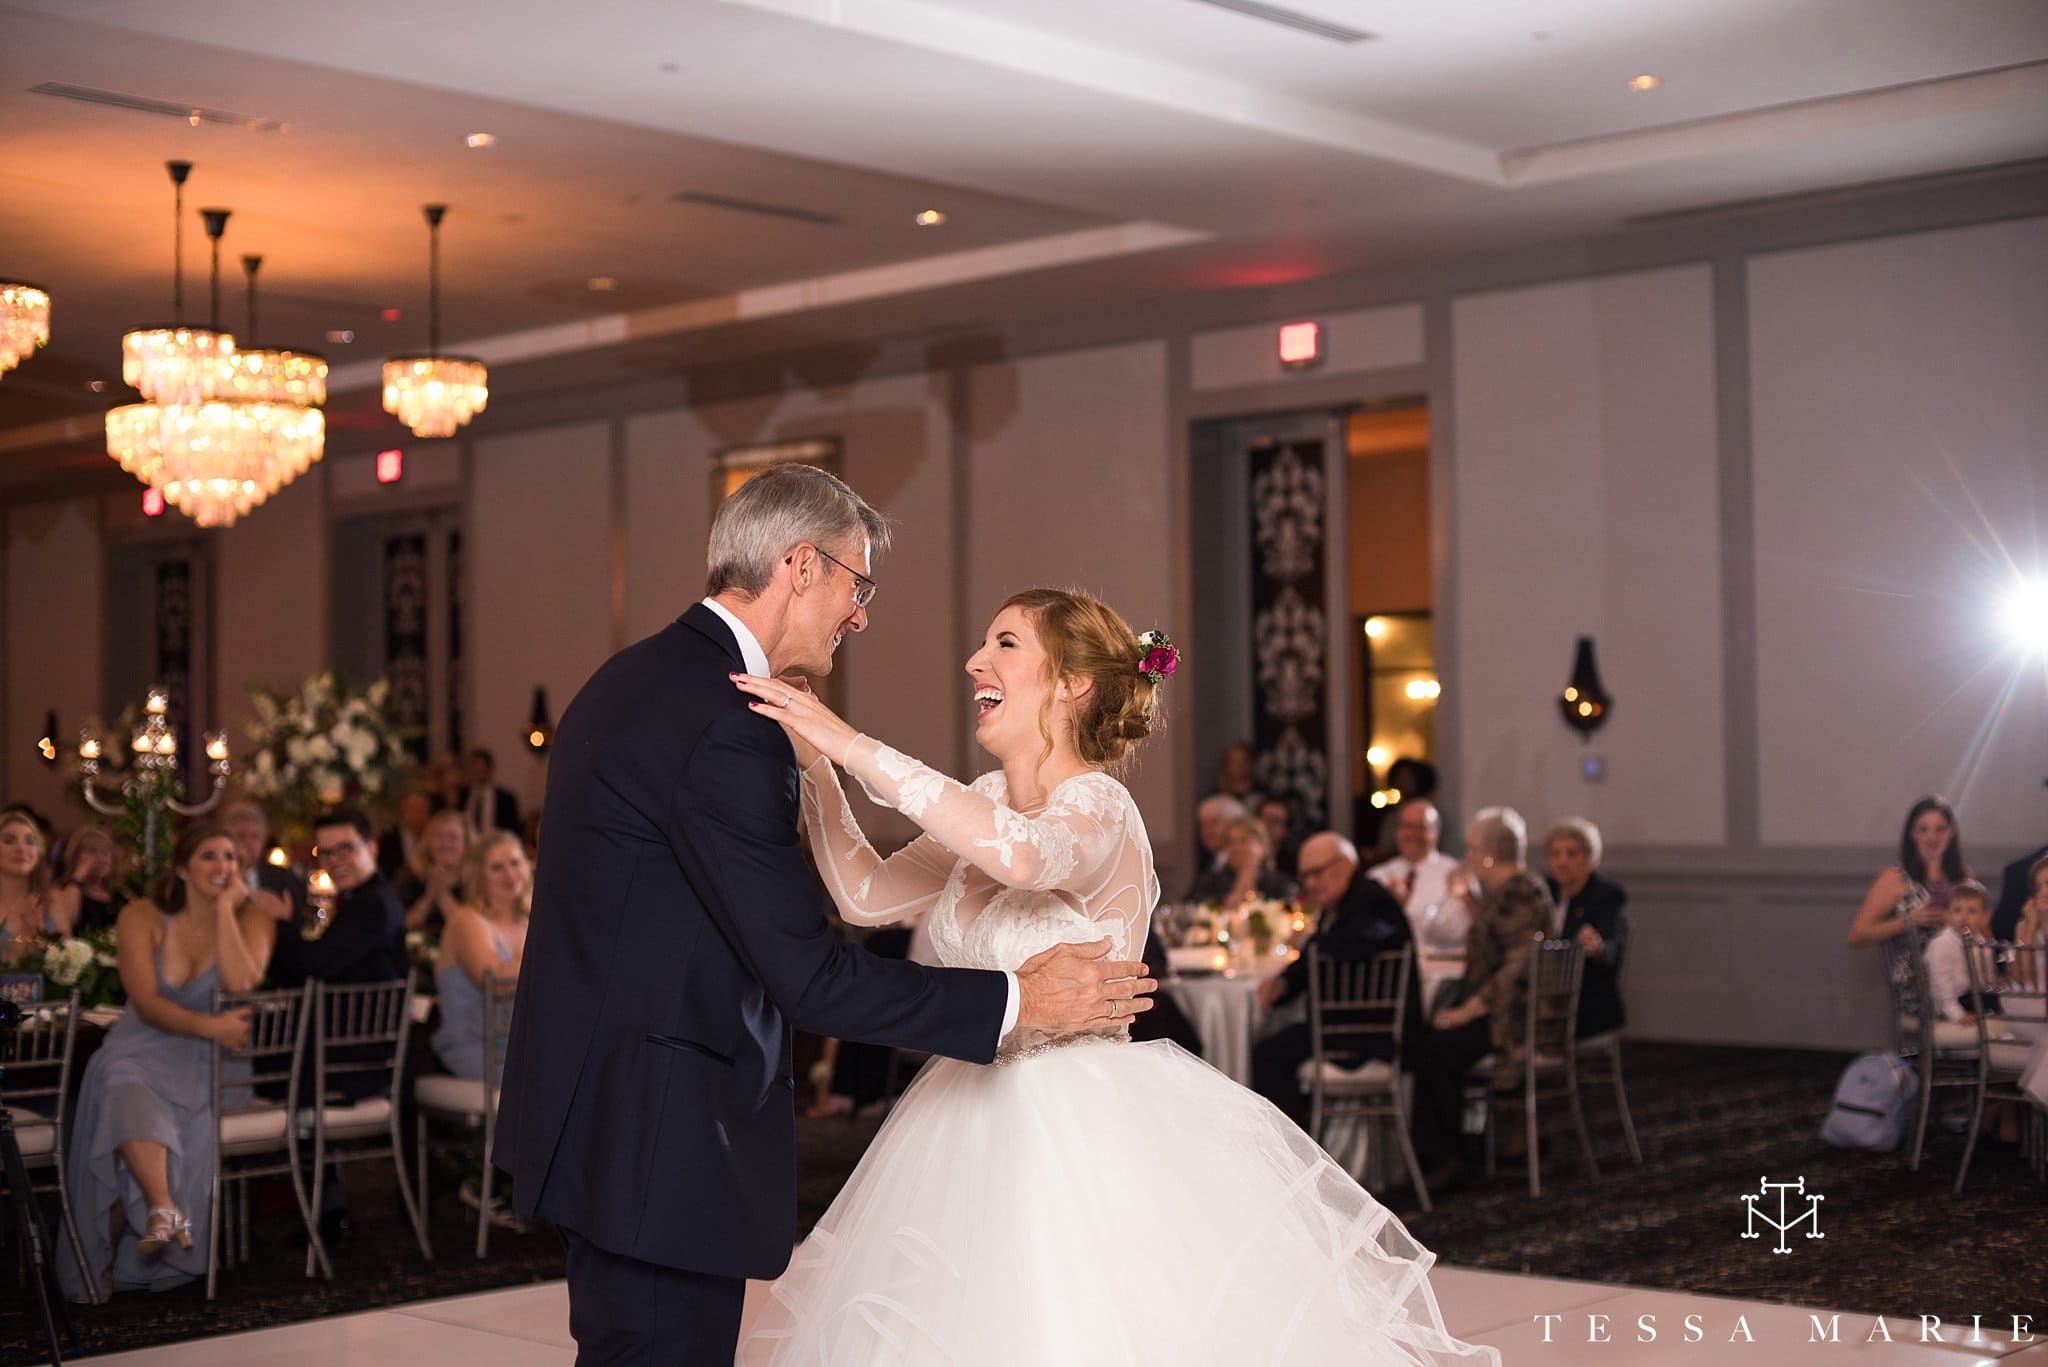 tessa_marie_weddings_estate_wedding_flourish_wedding_legendary_events_wedding_angels_bride_groom_wedding_Day_rainy_wedding_day_fall_october_wedding_atlantas_best_wedding_professionals_0760.jpg